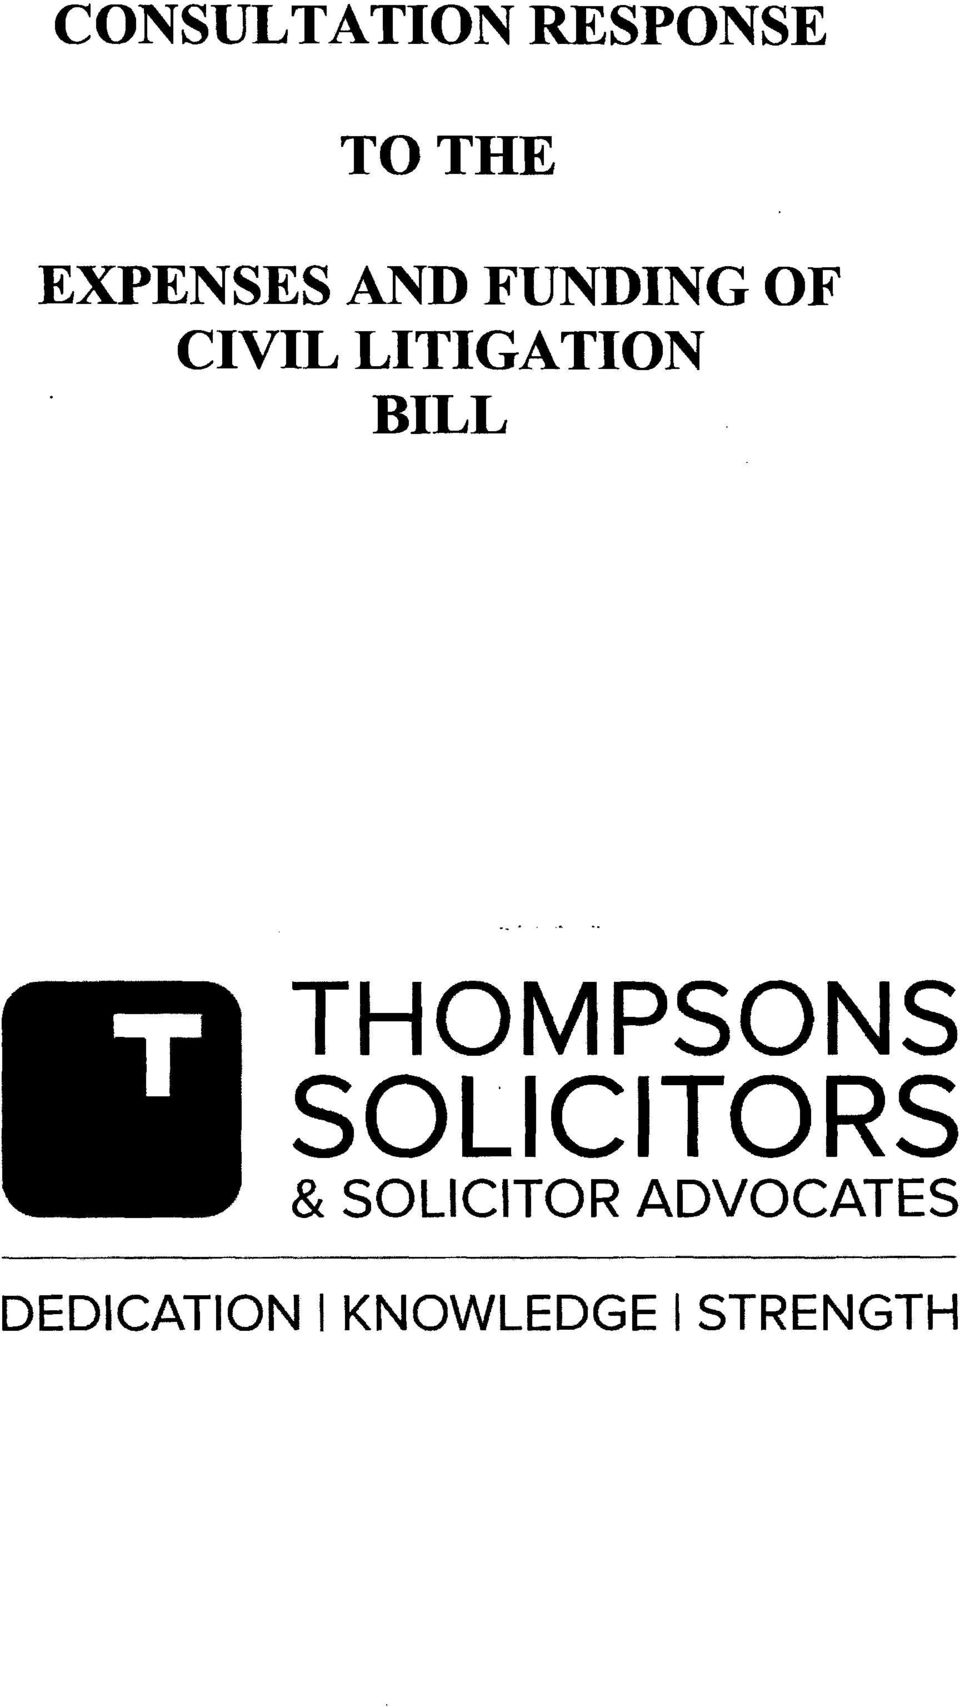 LITIGATION BILL THOMPSONS SOLICITORS